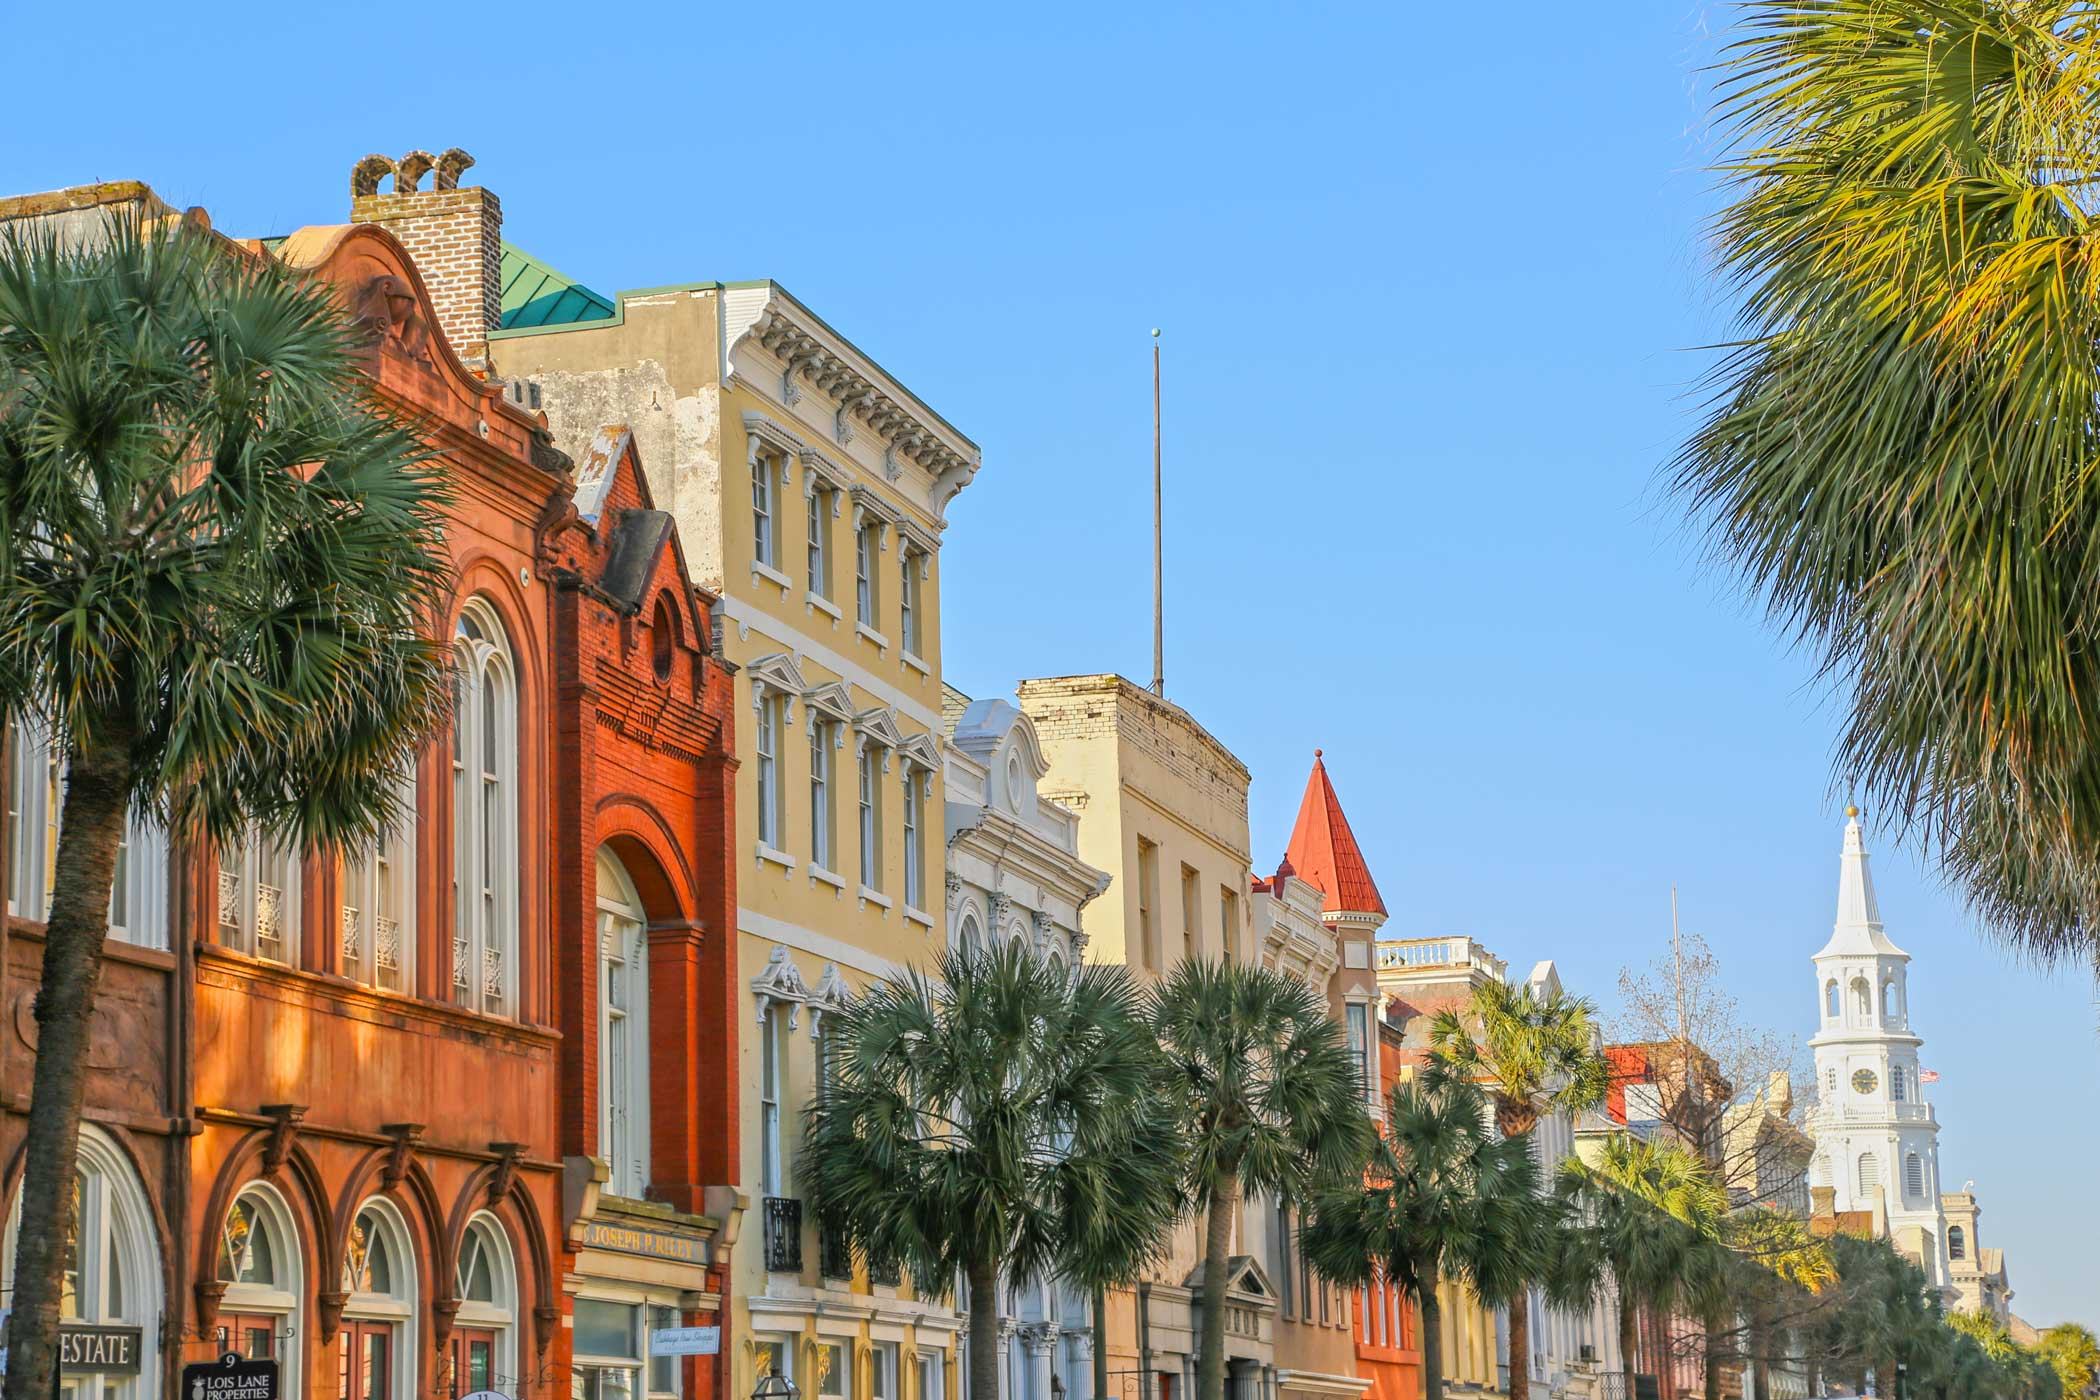 A colorful view of Charleston's historic buildings and lively palm trees.